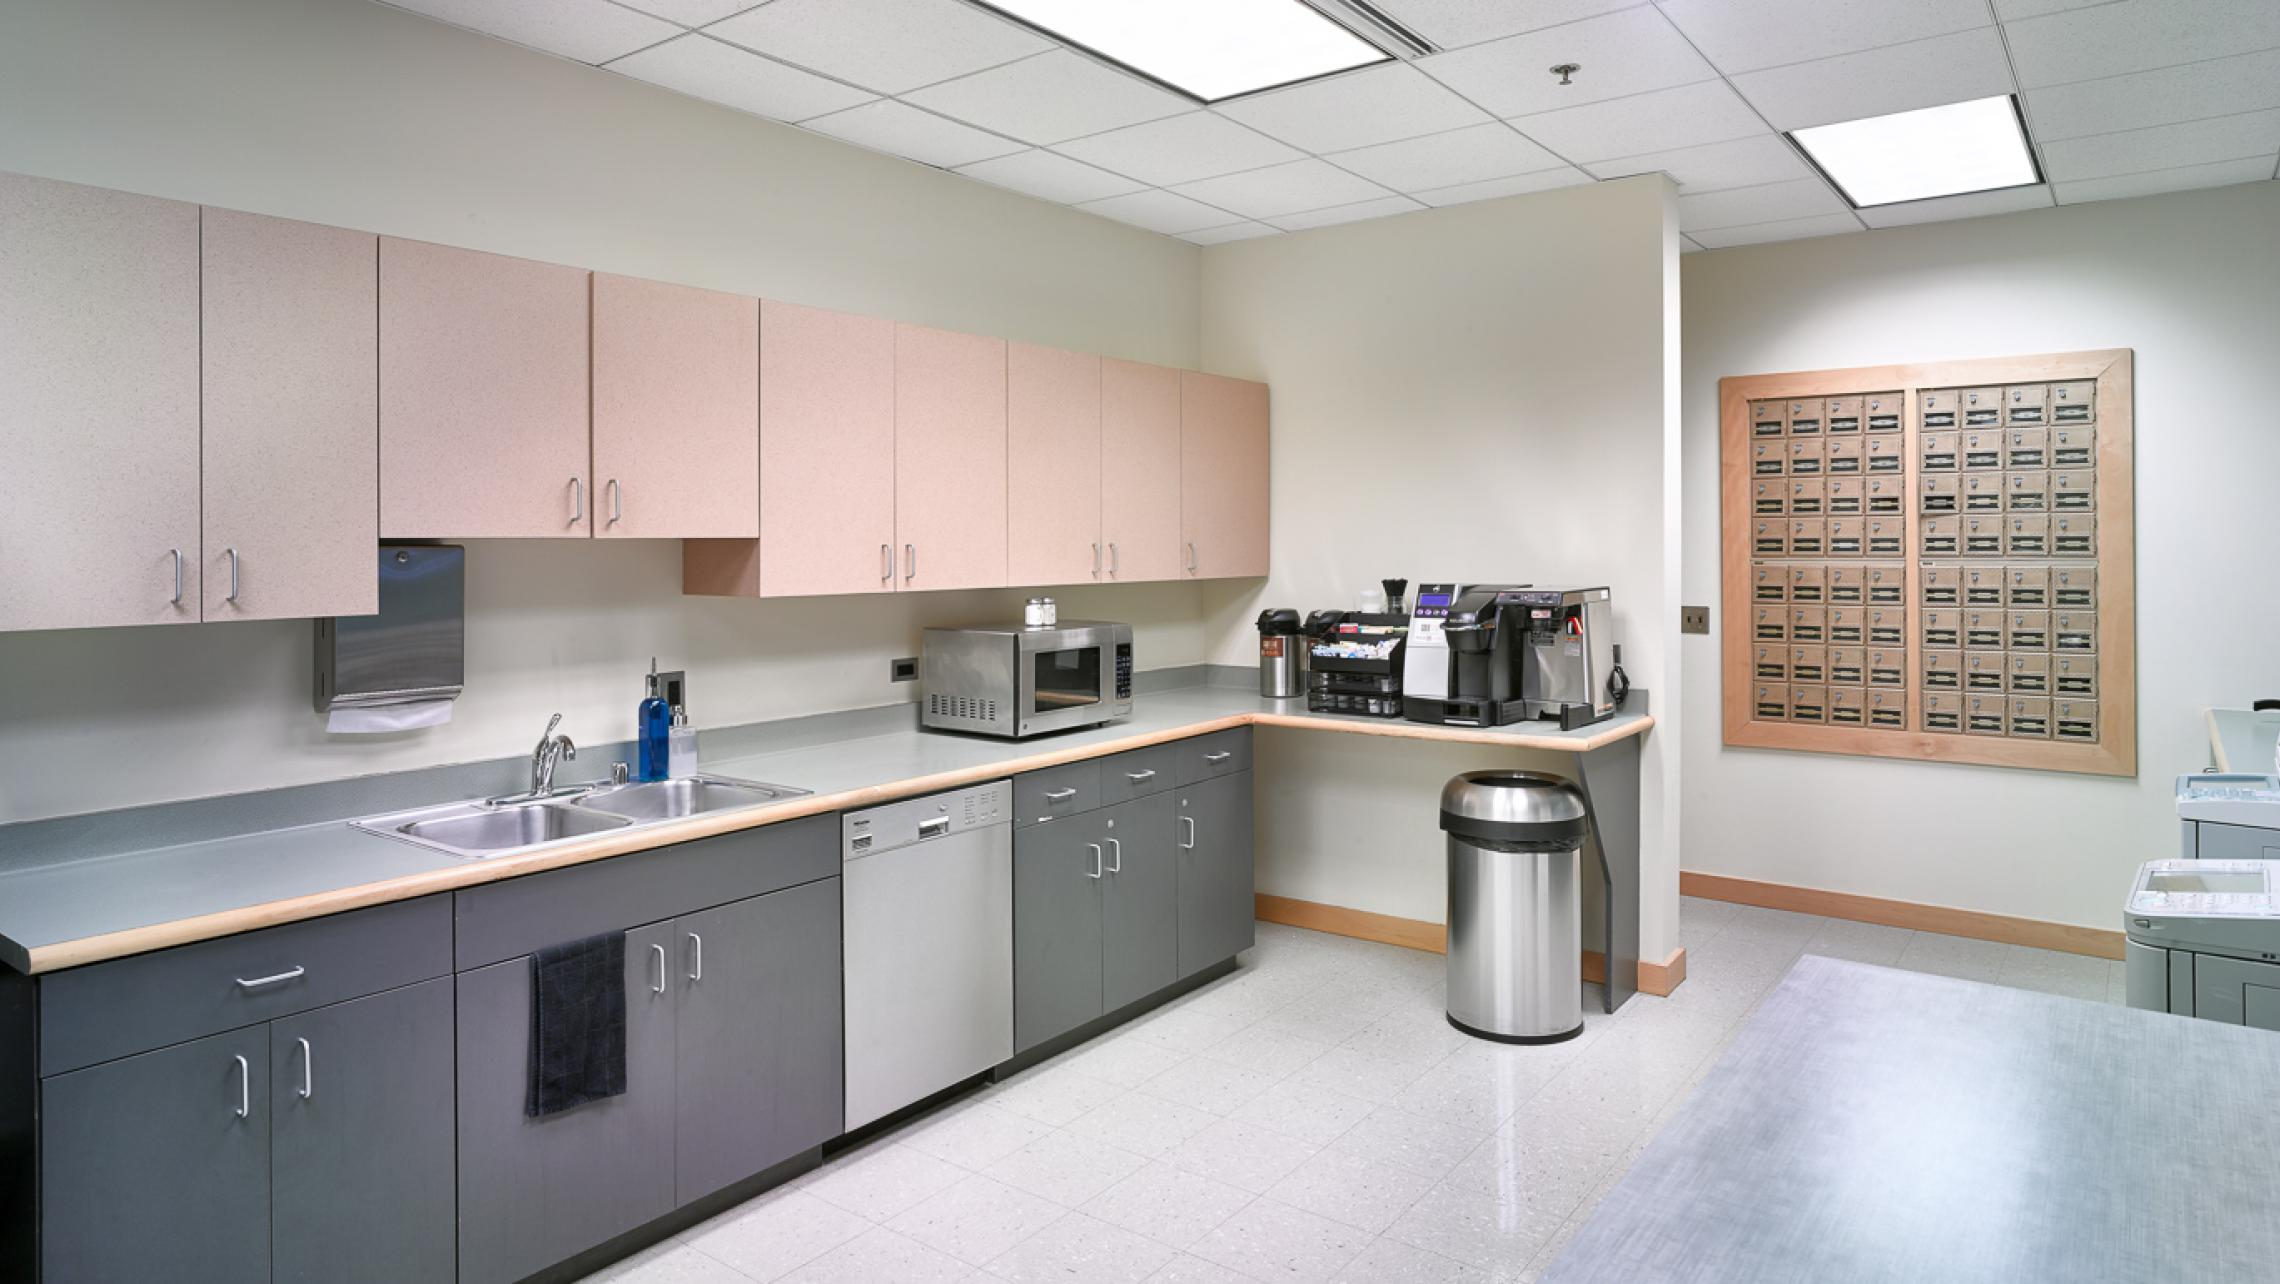 ULI Capitol Executive Suites - Break Room with Copiers, Coffee, Mail